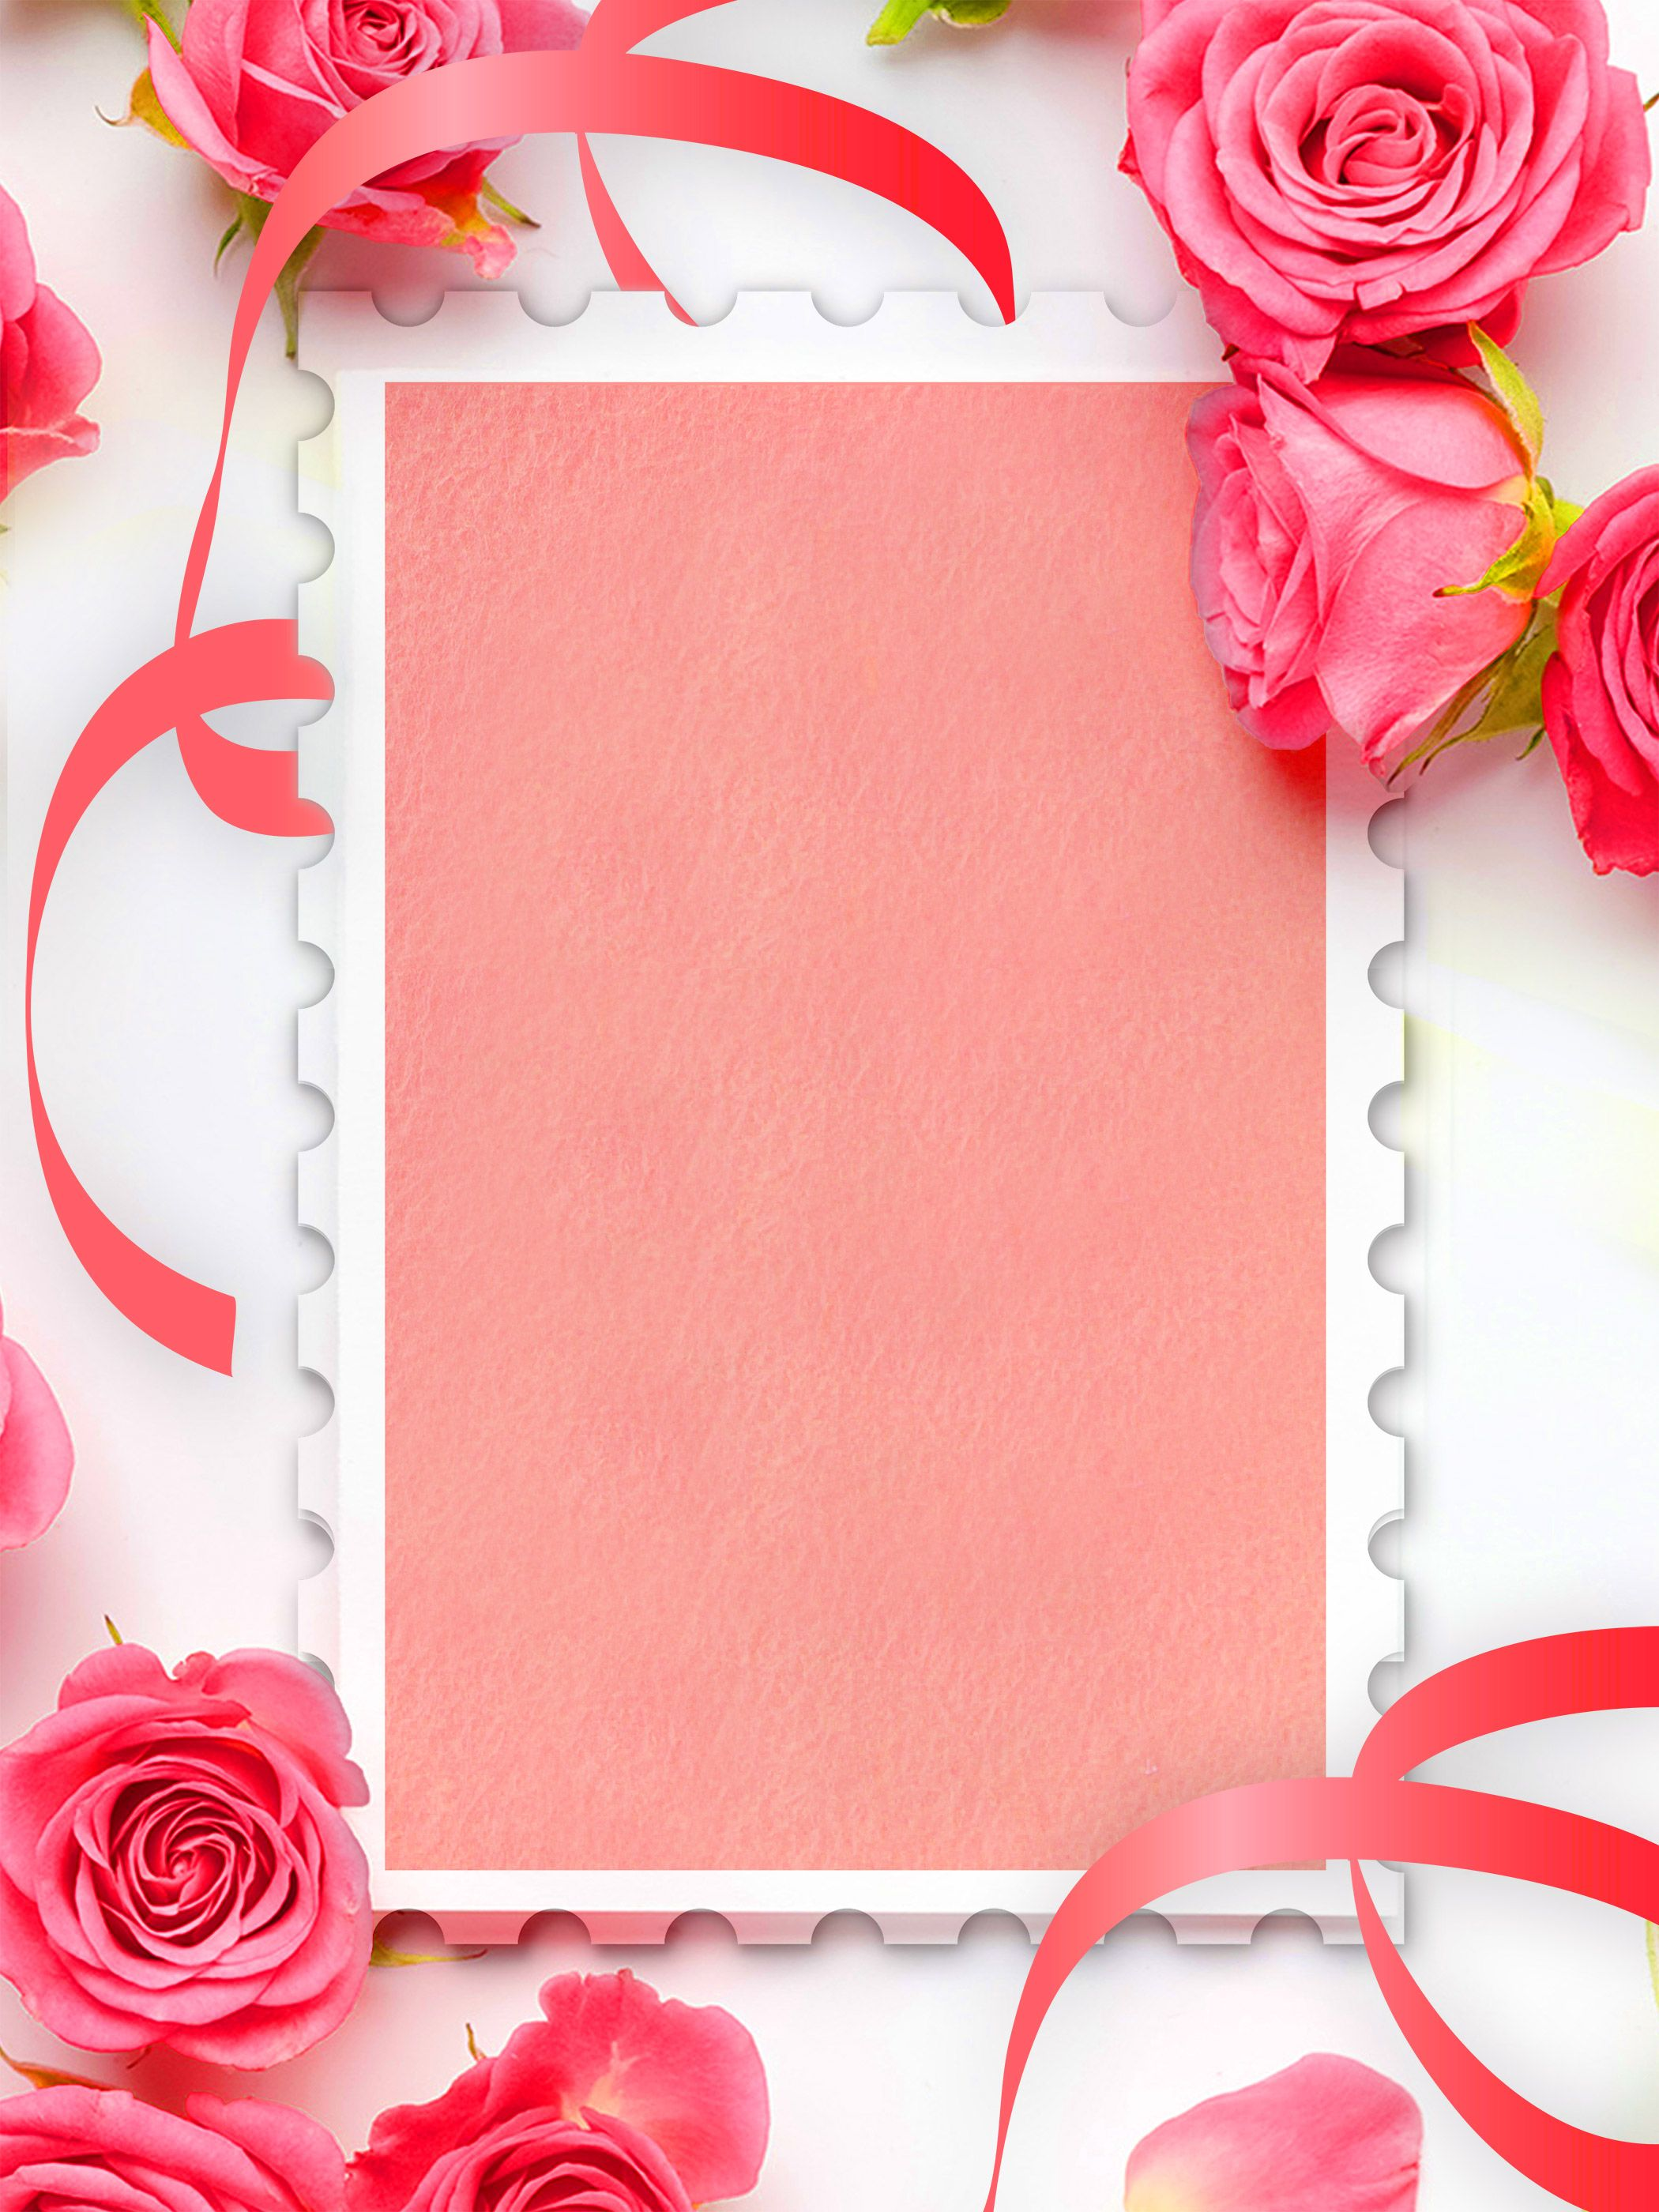 Valentines Day Poster Background Template Valentine Background Valentines Day Background Images For Valentines Day